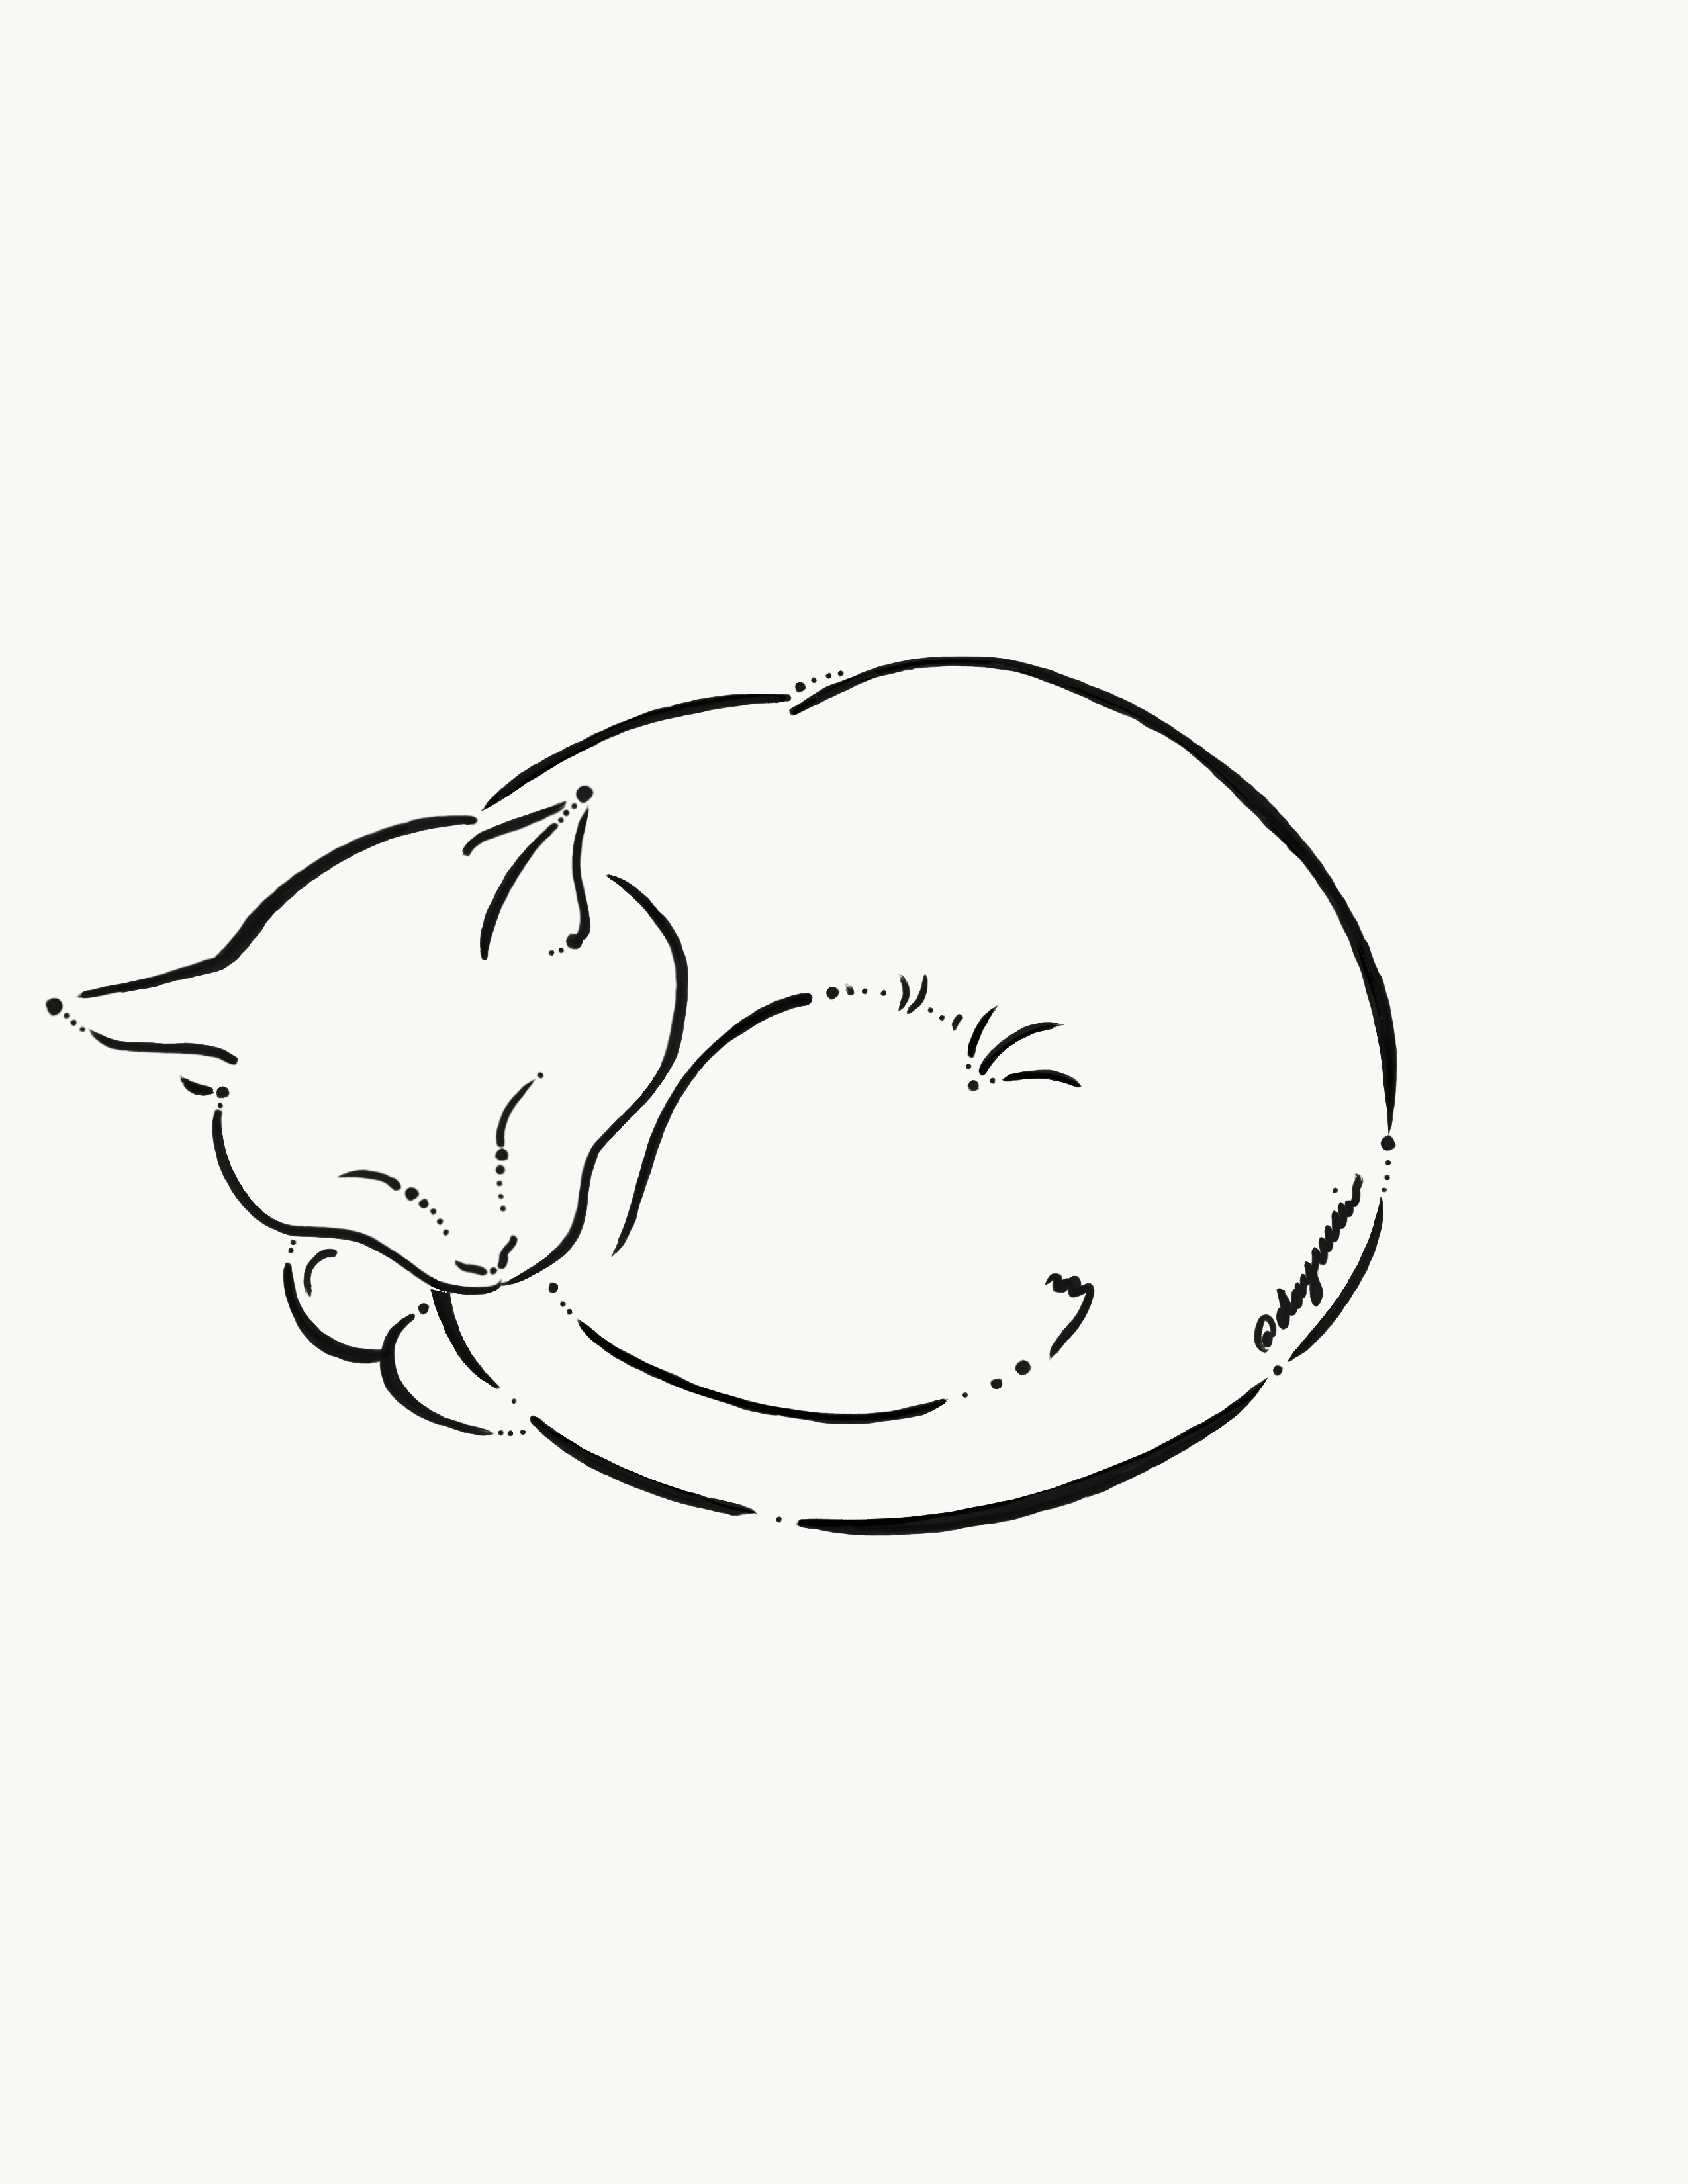 Commission Personalized Black And White Simple Sleeping Cat Tattoo Design Cat Tattoo Designs Cat Tattoo Simple Kitten Tattoo